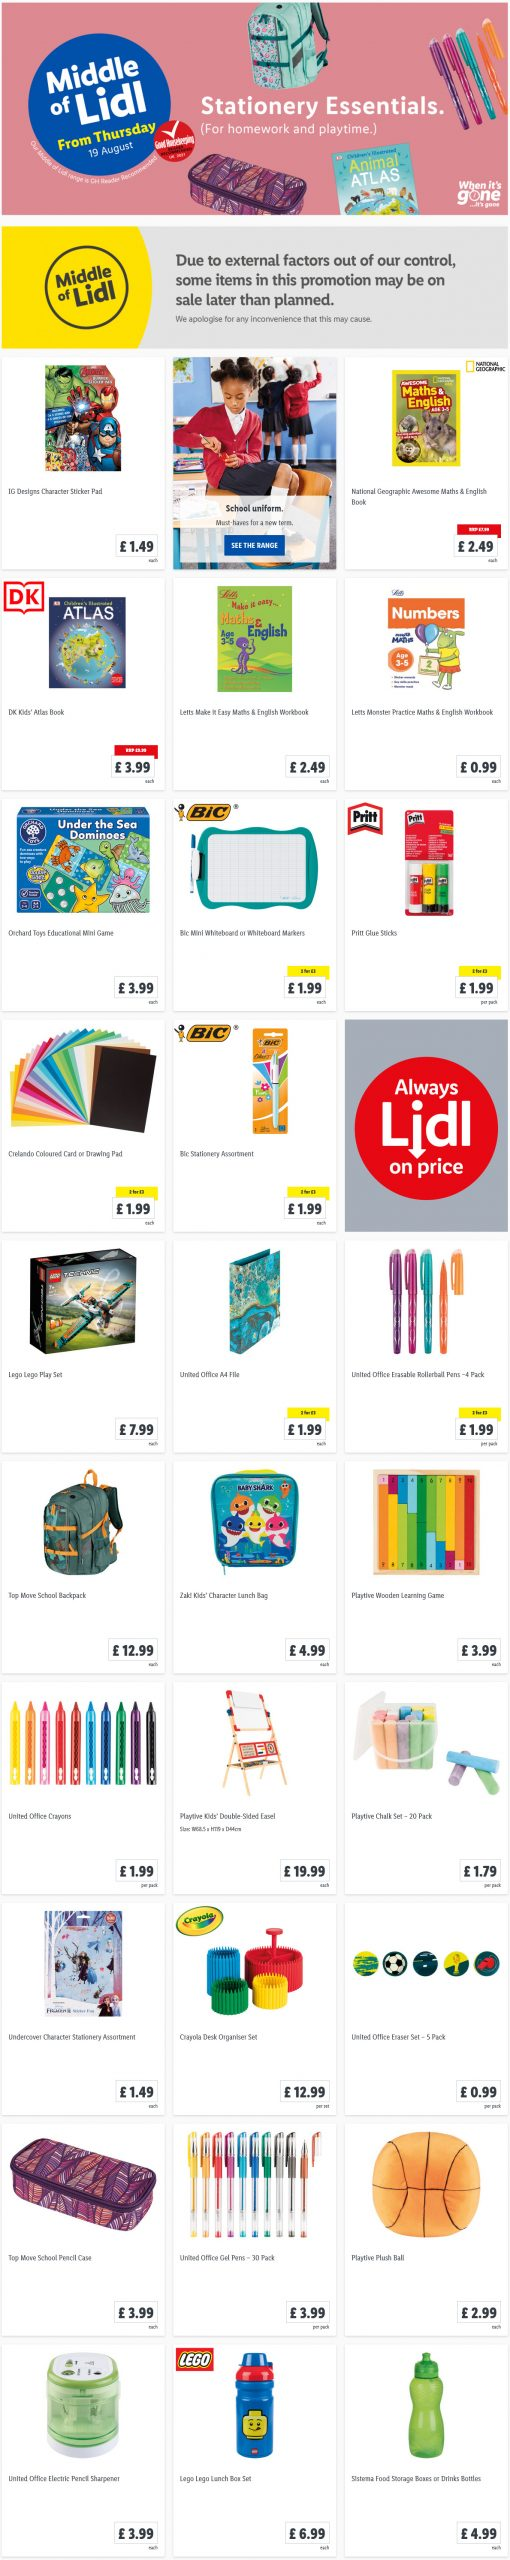 LIDL Offers this Thursday Stationery Essentials From 19th August 2021